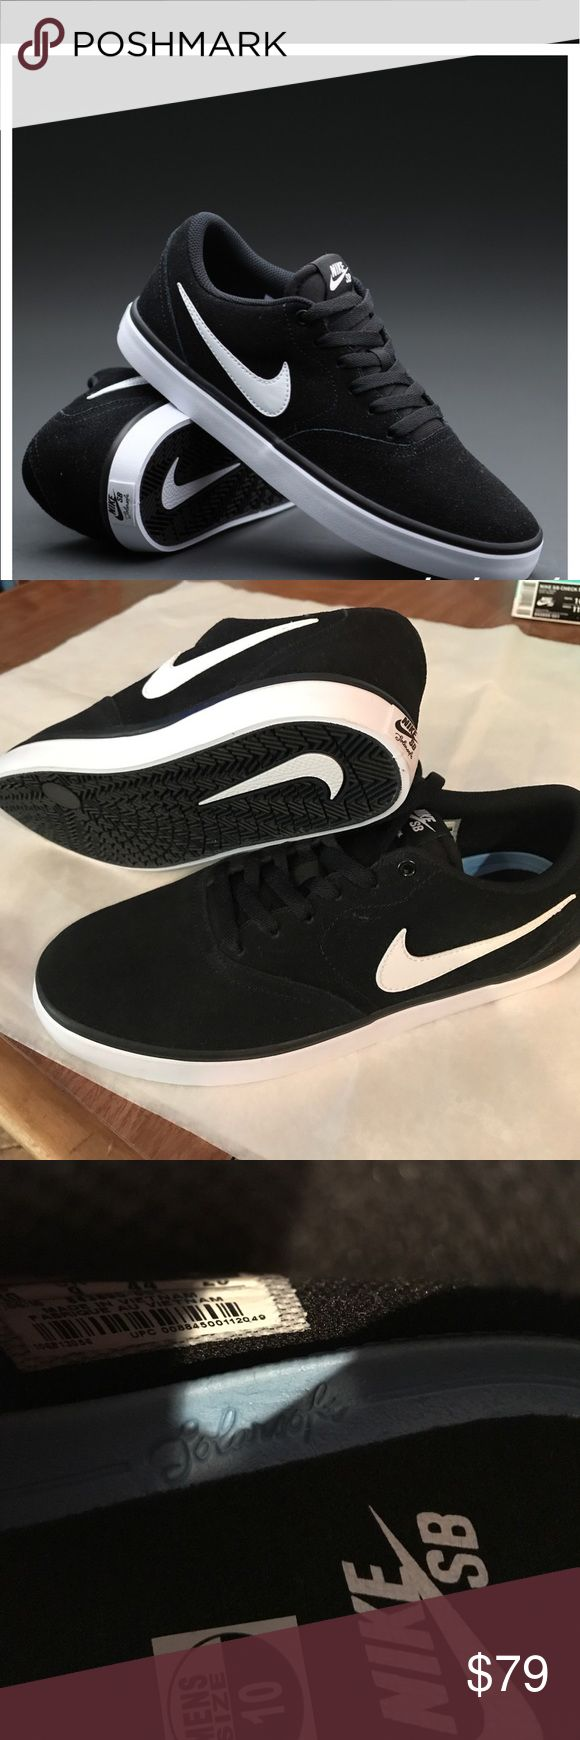 New Men's Nike SB SIZE 10 Brand New Authentic Nike SB . Everything I sell ships the same day or nest day. Buy from me with confidence. Please go see my stats. Thanks for stopping by. Nike Shoes Sneakers